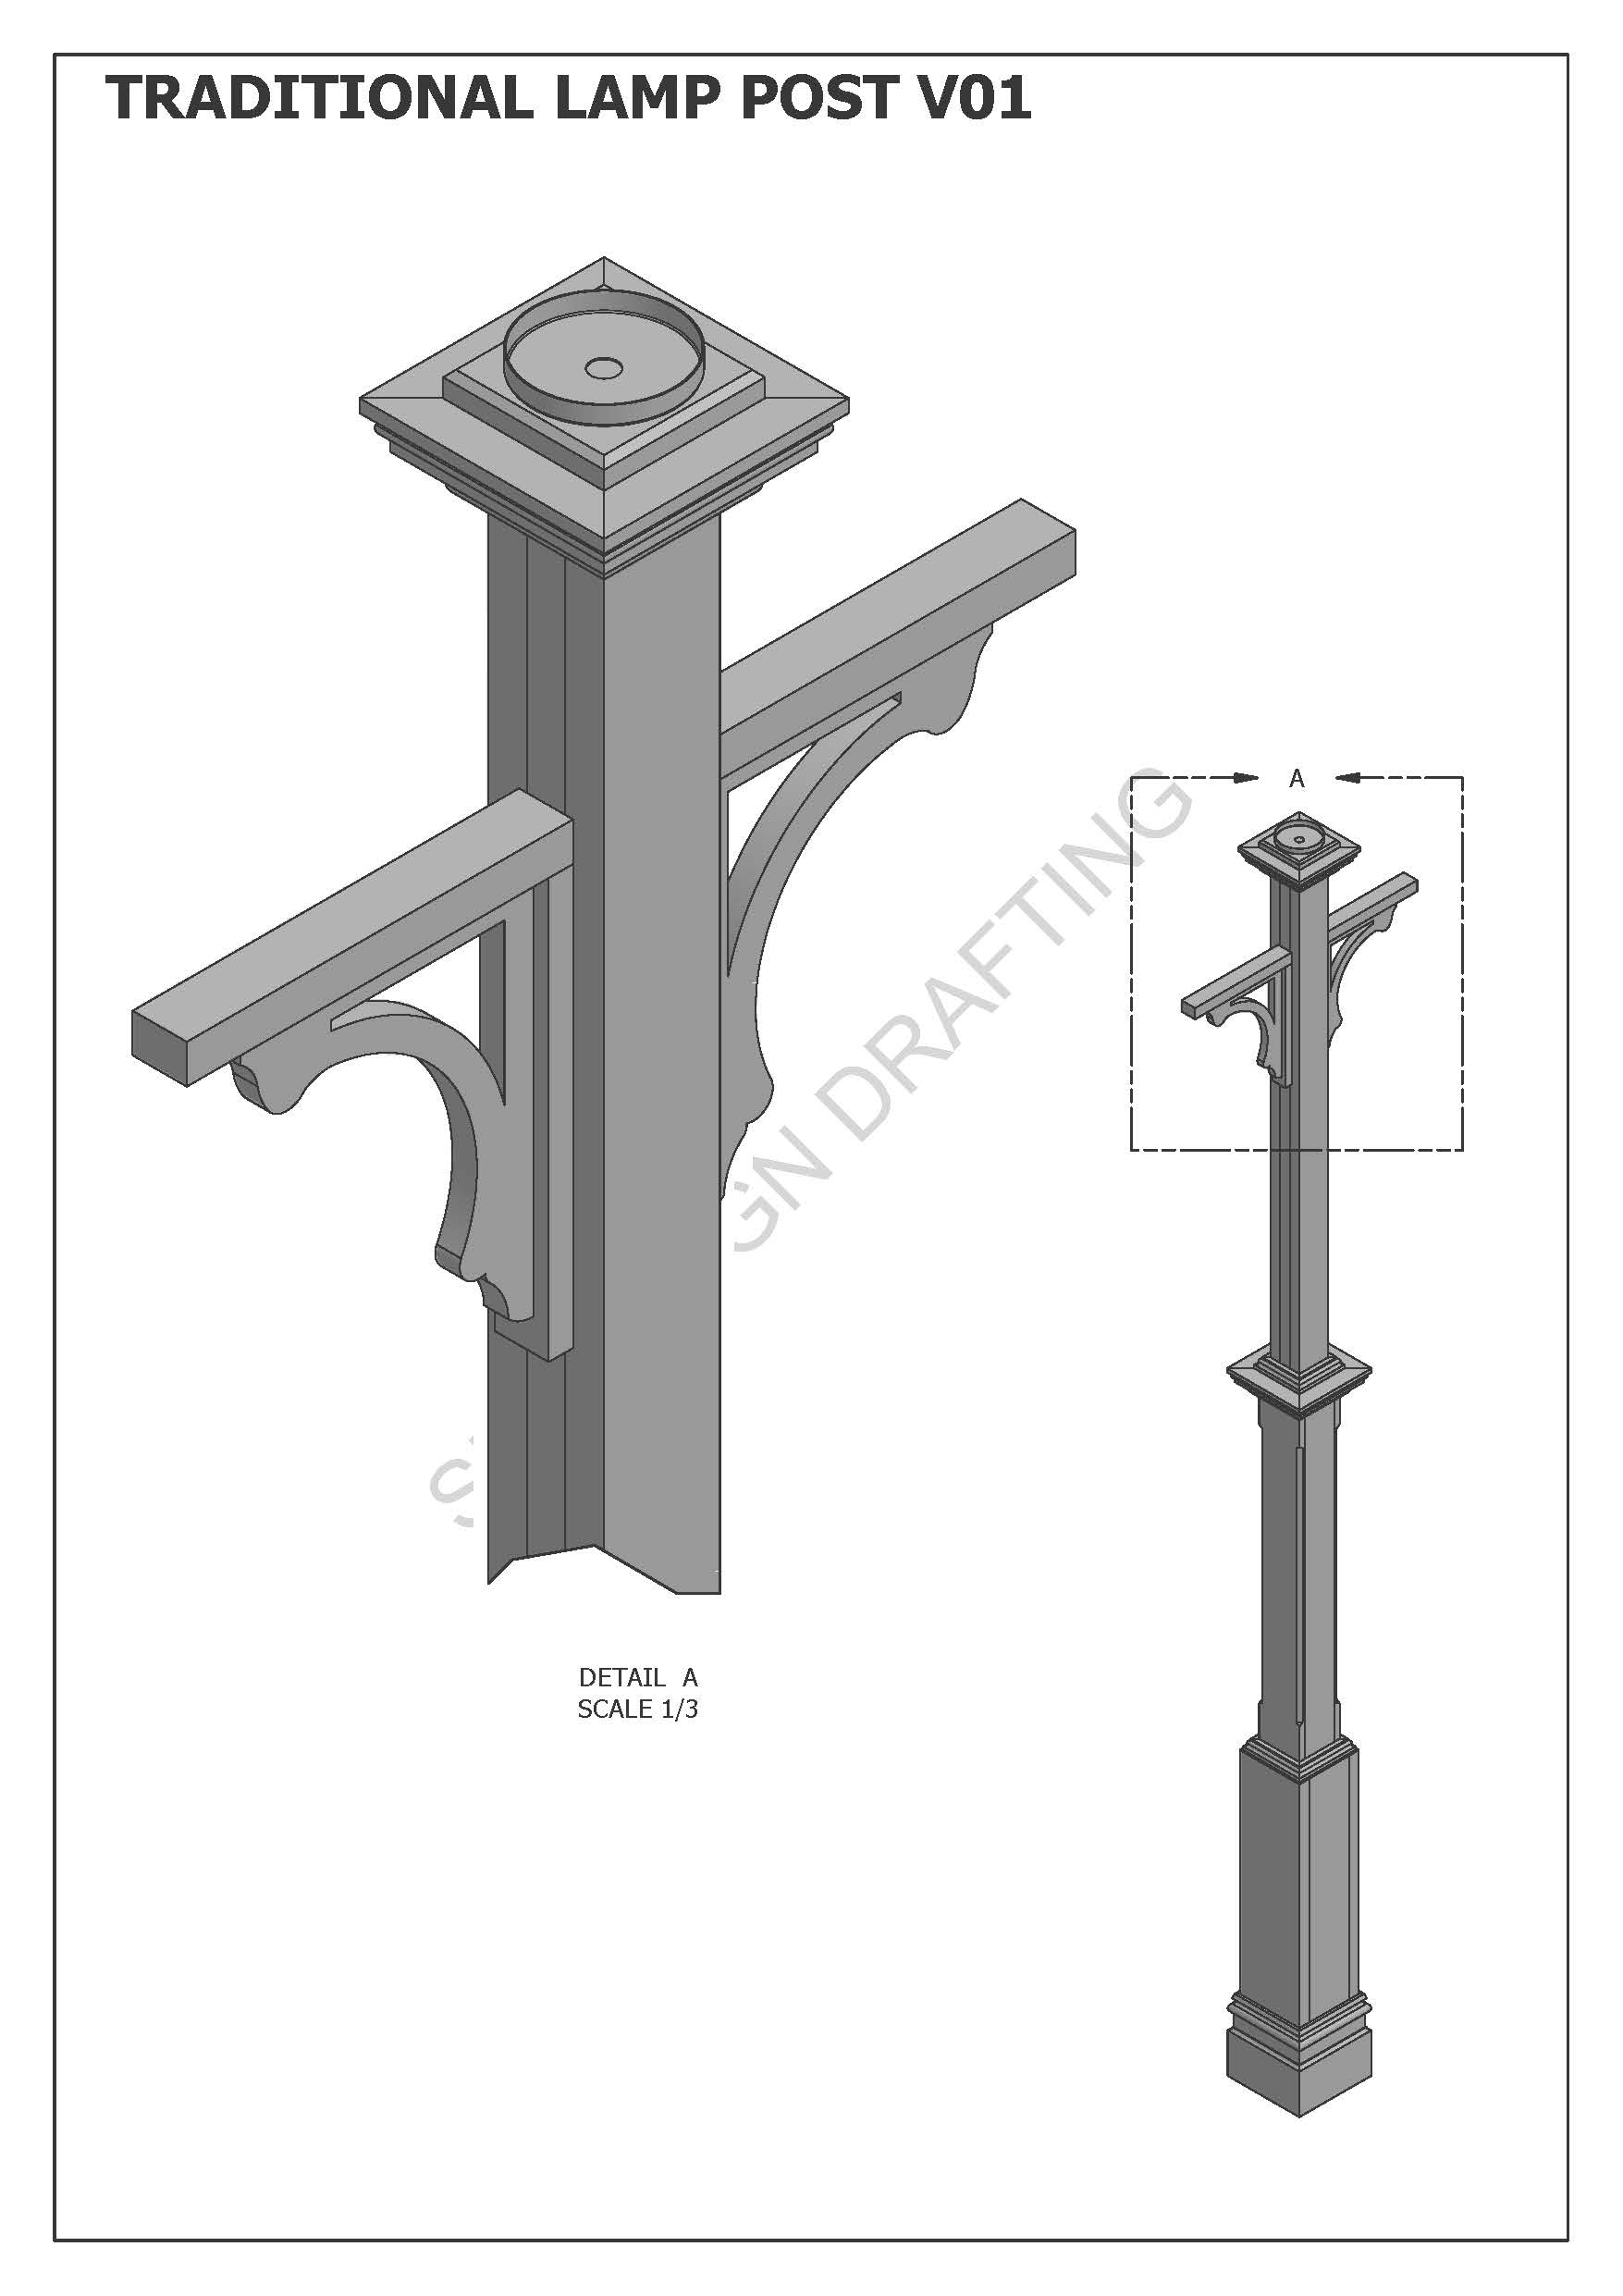 TRADITIONAL LAMP POST LIGHT V01